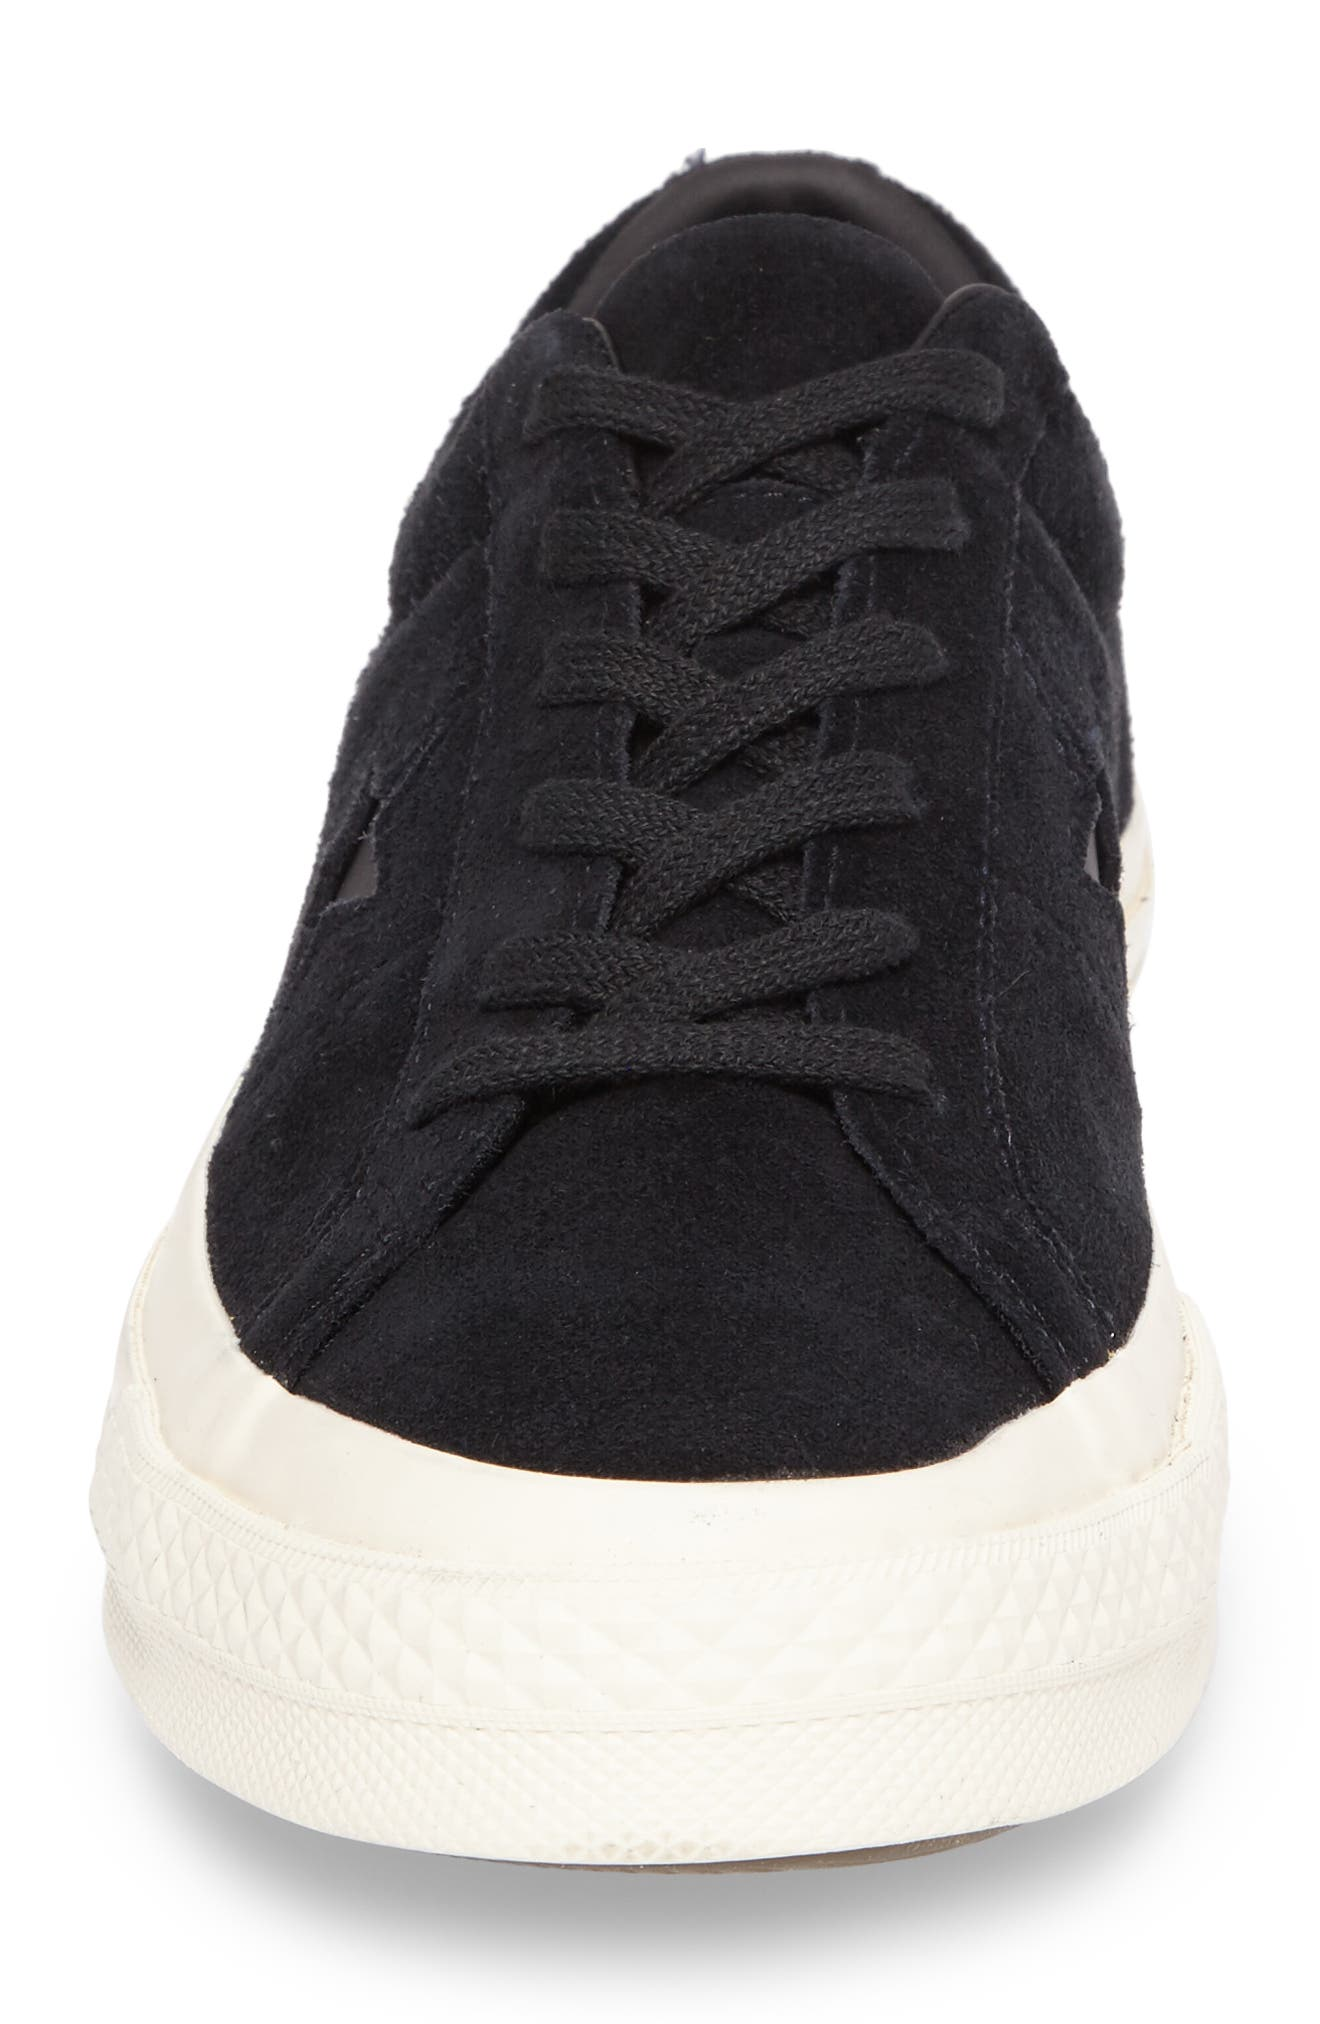 CONVERSE,                             One Star Sneaker,                             Alternate thumbnail 4, color,                             001